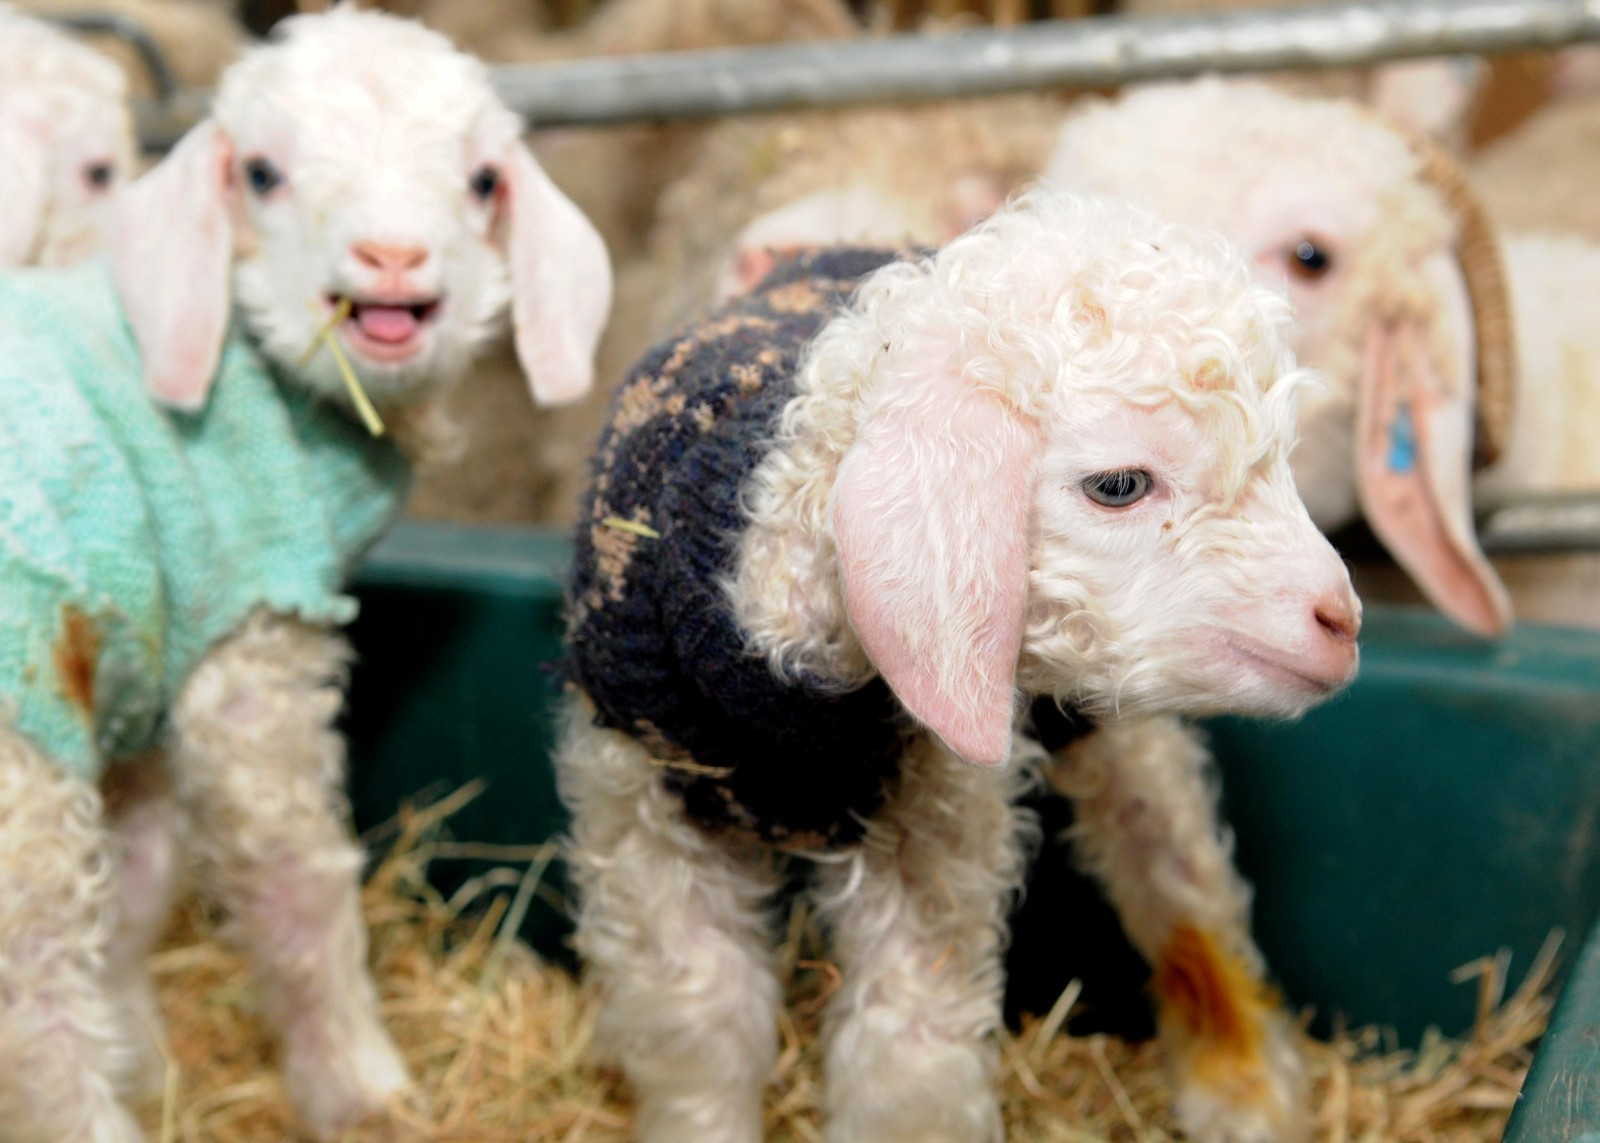 Frilly goats gruff! Baby goats keep warm dressed in woolly JUMPERS